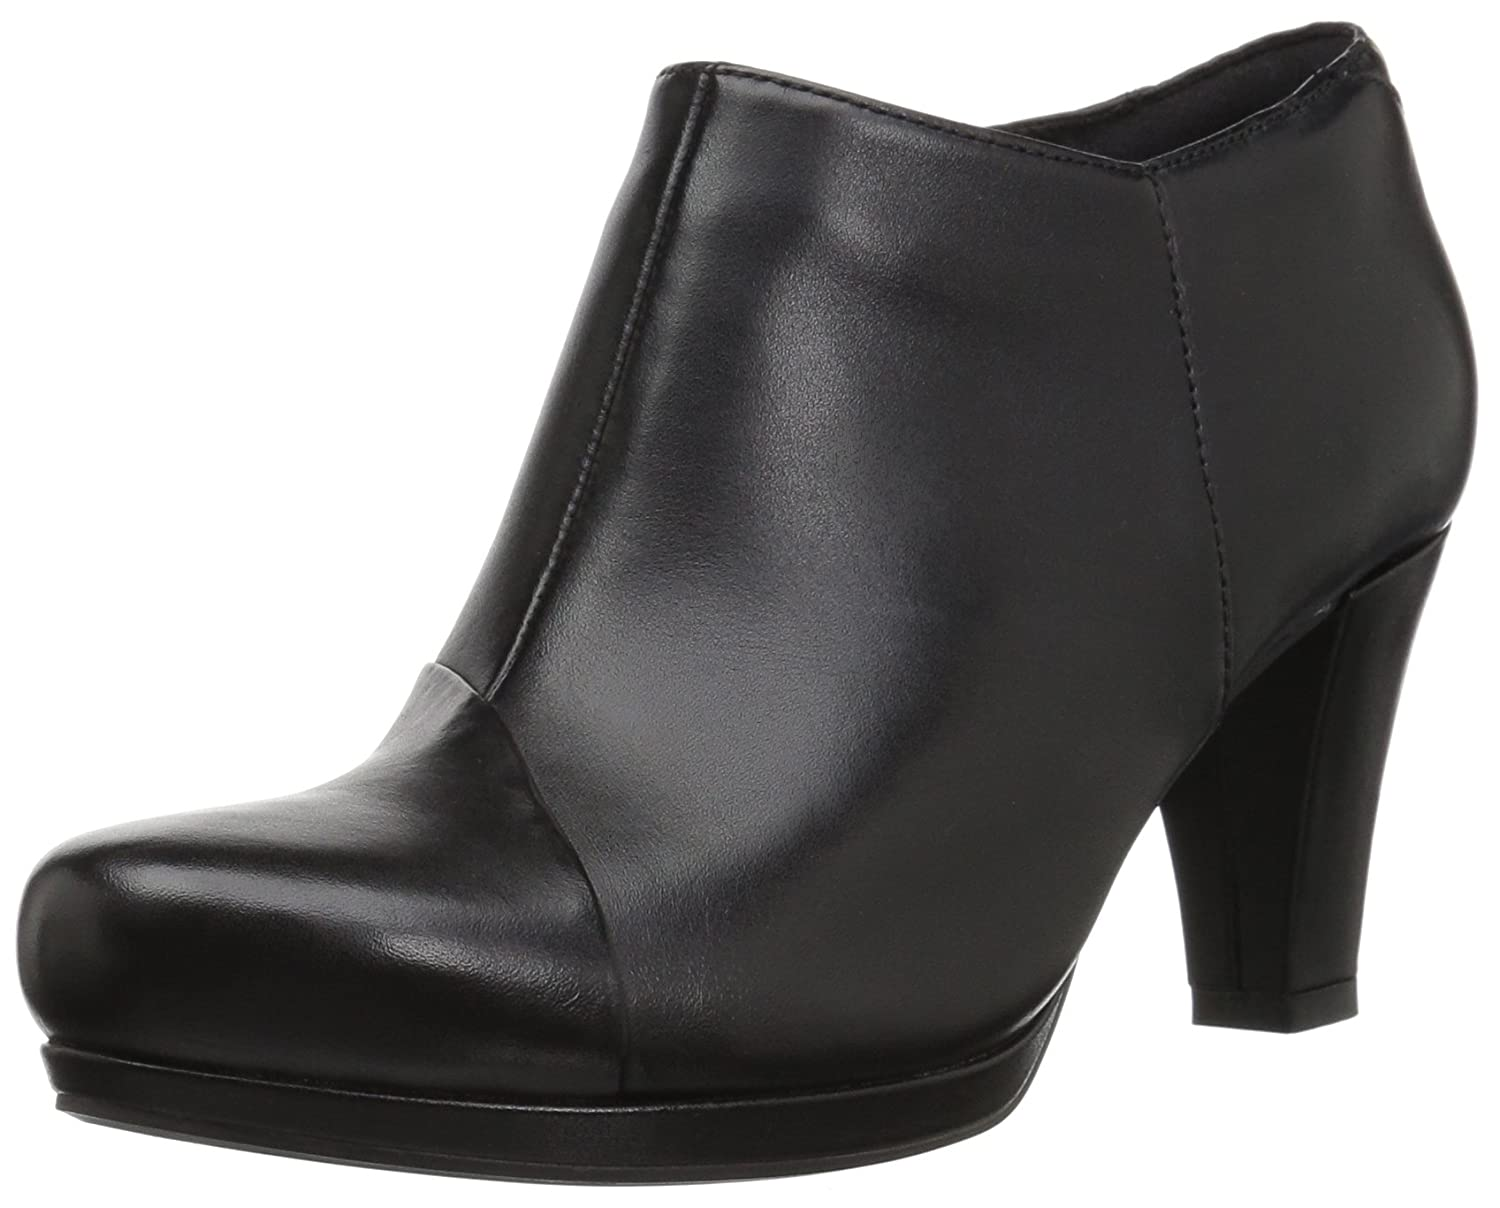 CLARKS Women's Chorus Jingle Ankle Bootie B01N6FWA6C 11 B(M) US|Black Leather